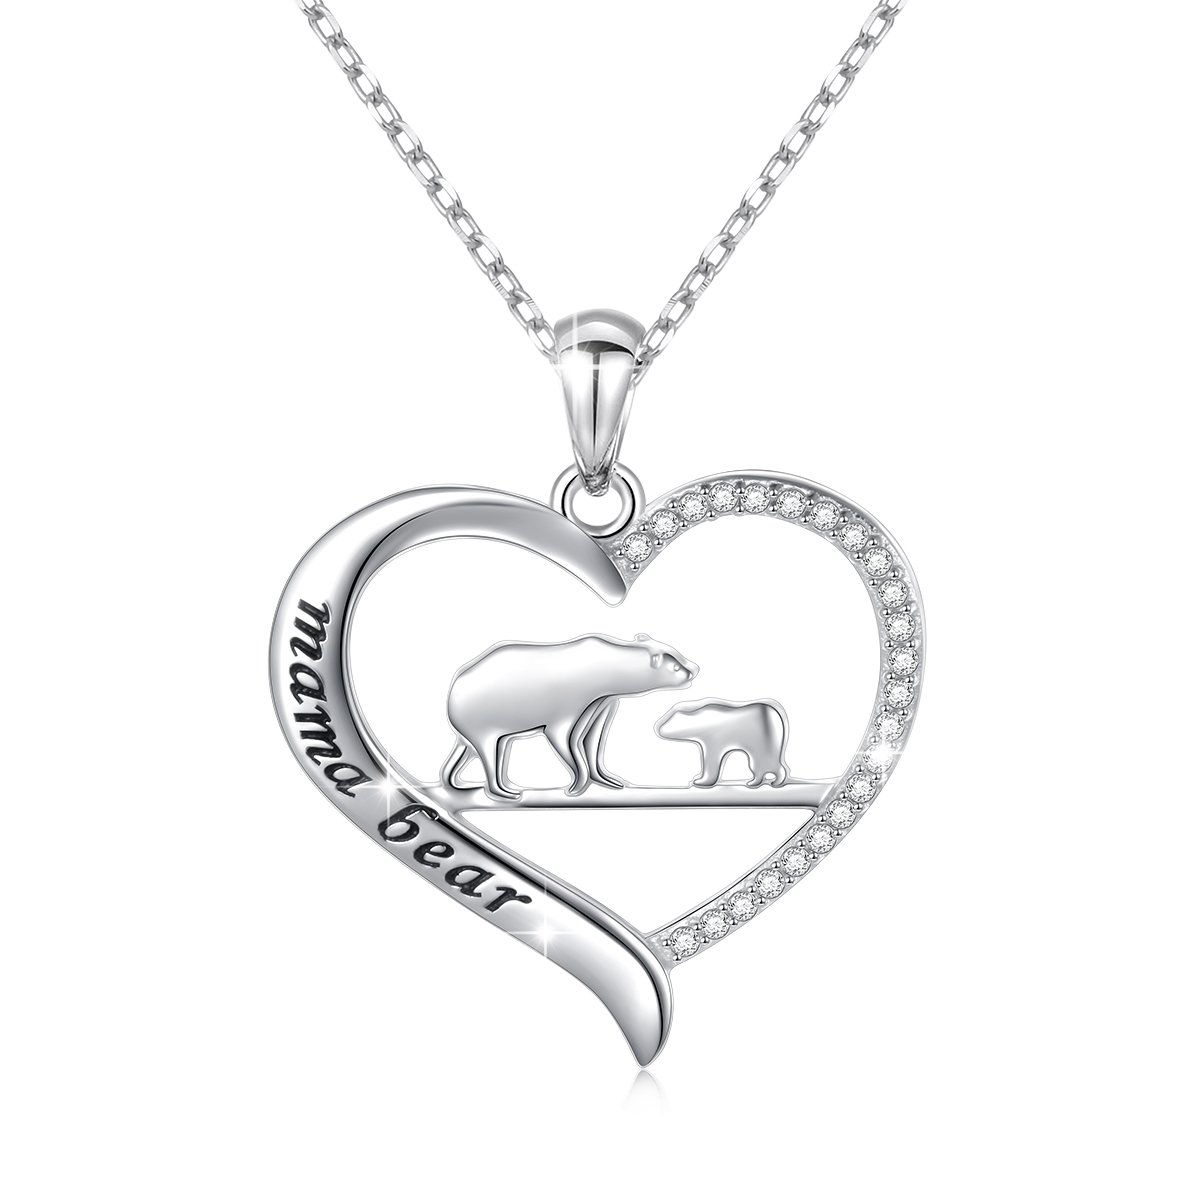 745656141ff8e Sterling Silver For Mom Necklace Mothers Day Gift Mama Bear Pendant  Necklace or Bracelet for Mum